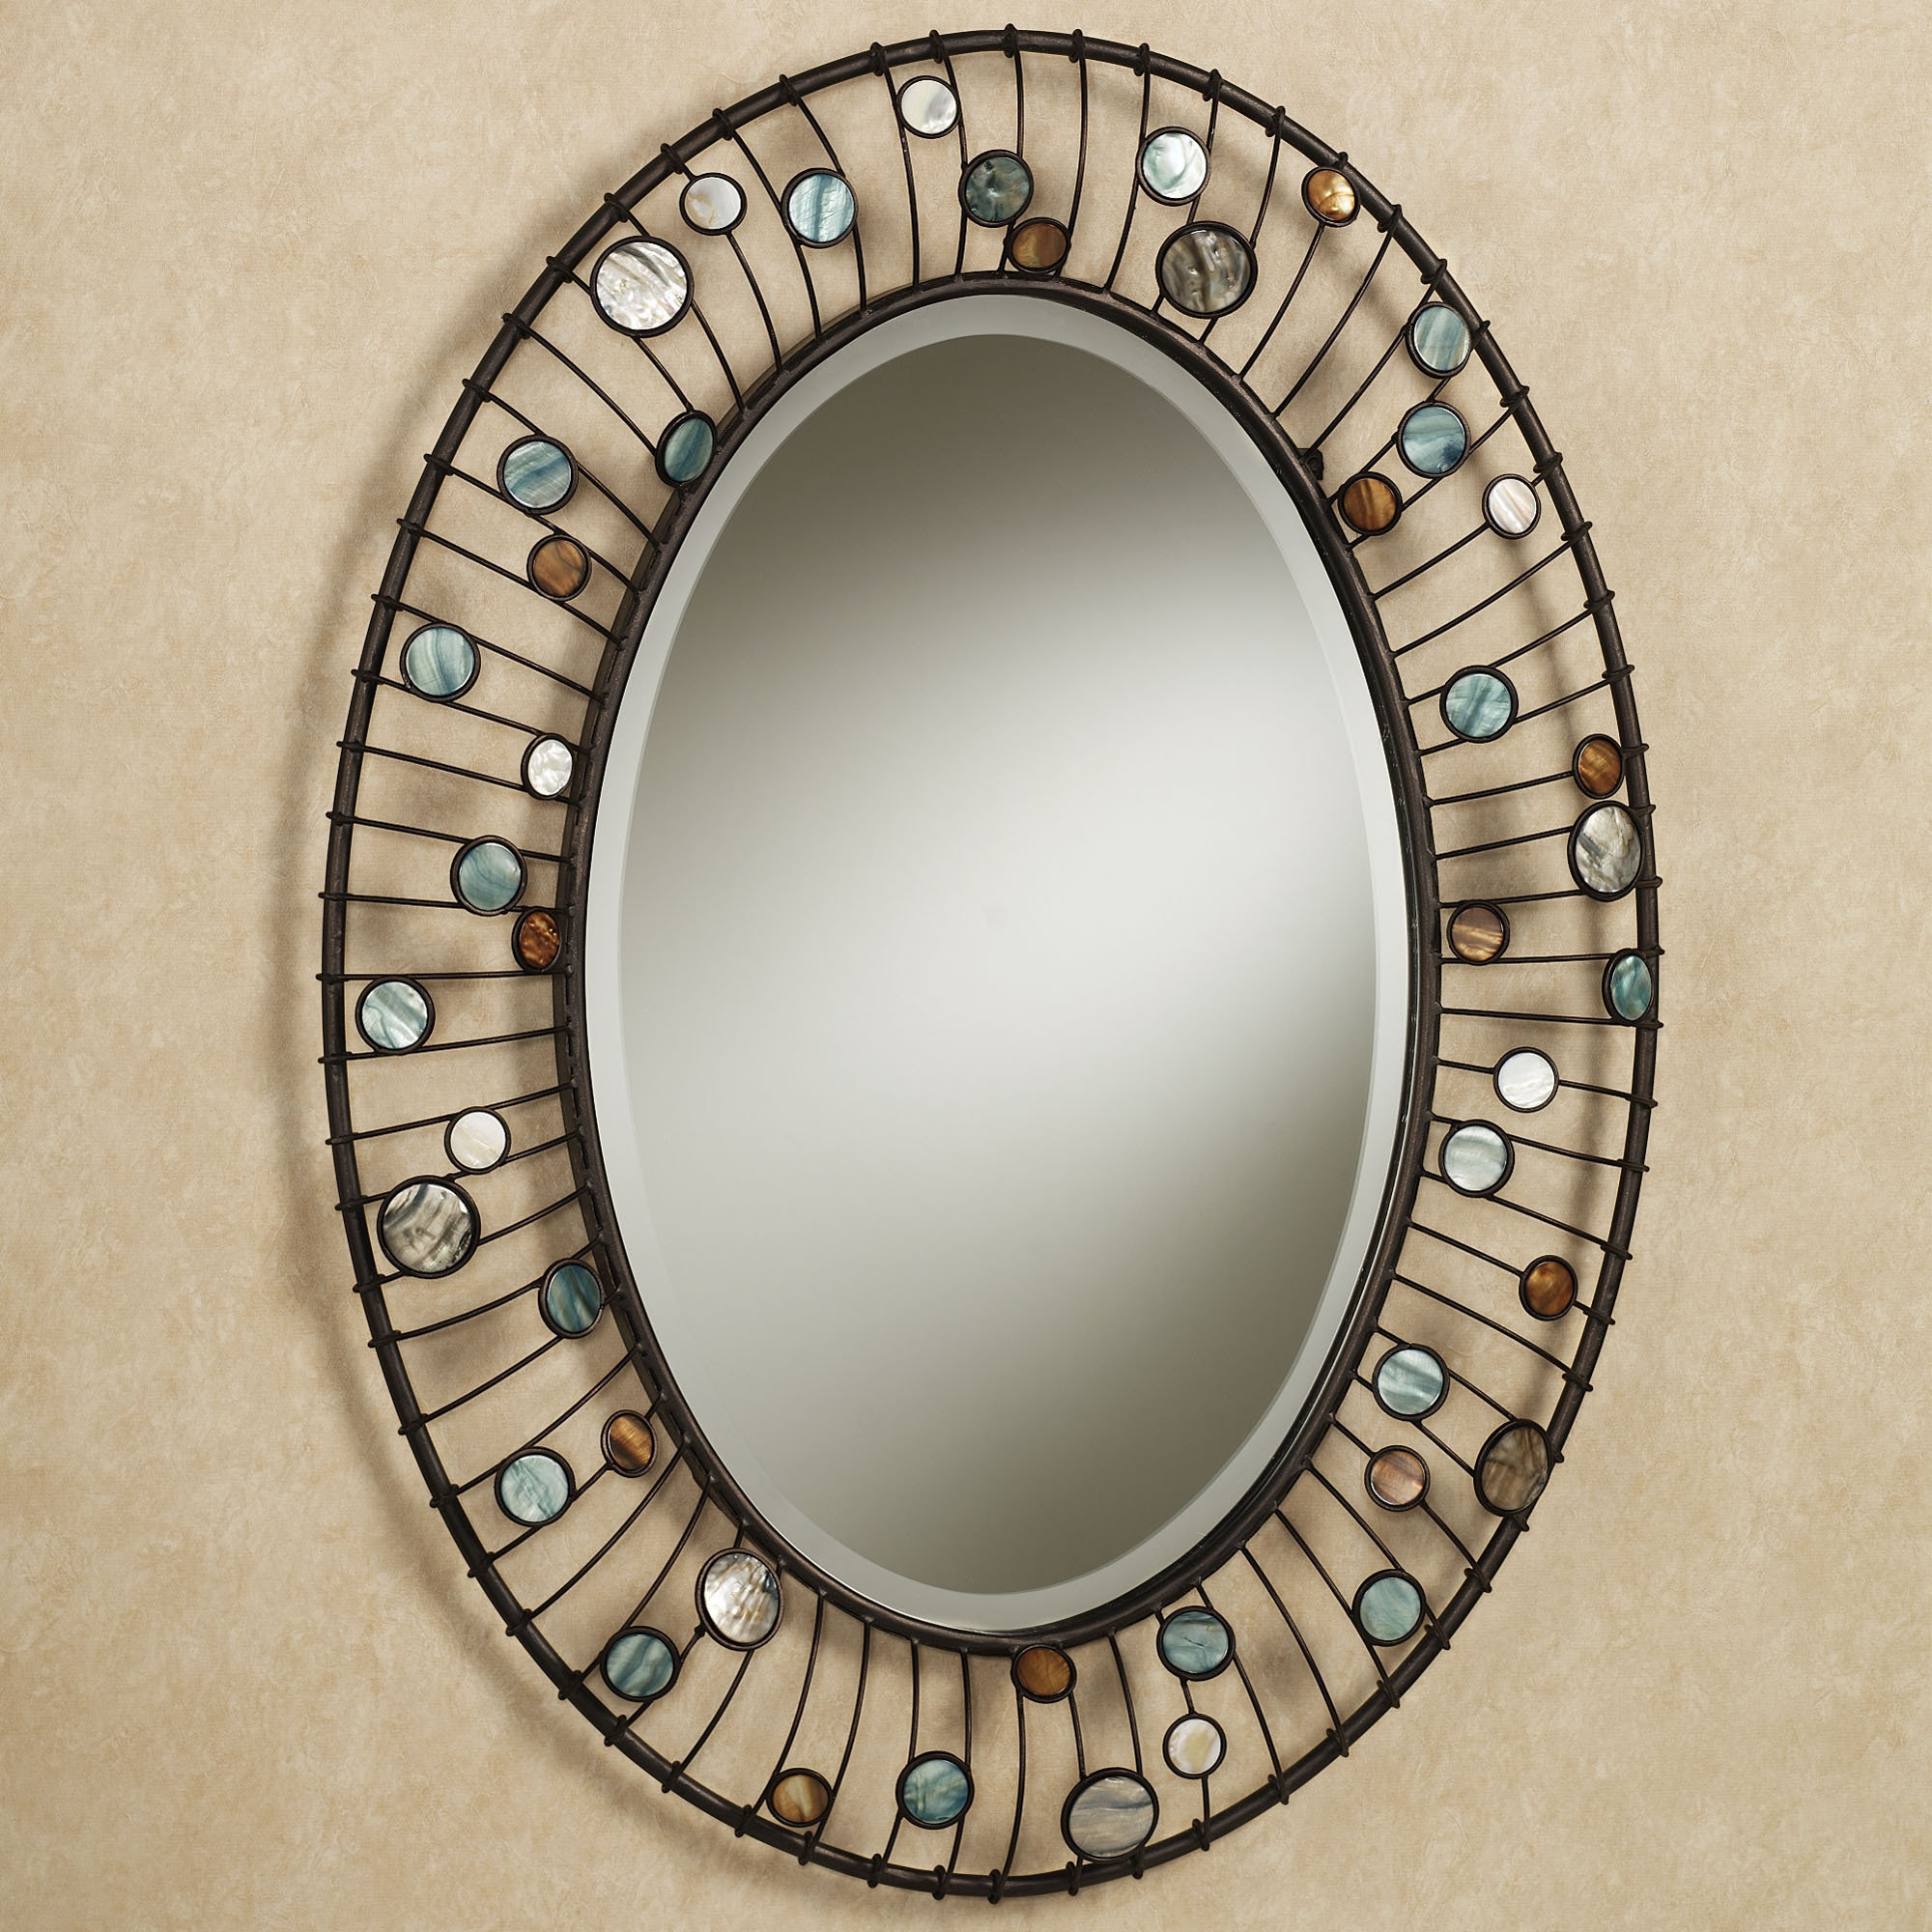 Inviting Sophisticated Wall Mirrors Decorative Inspiration And Within Oval Wall Mirrors (Image 6 of 15)